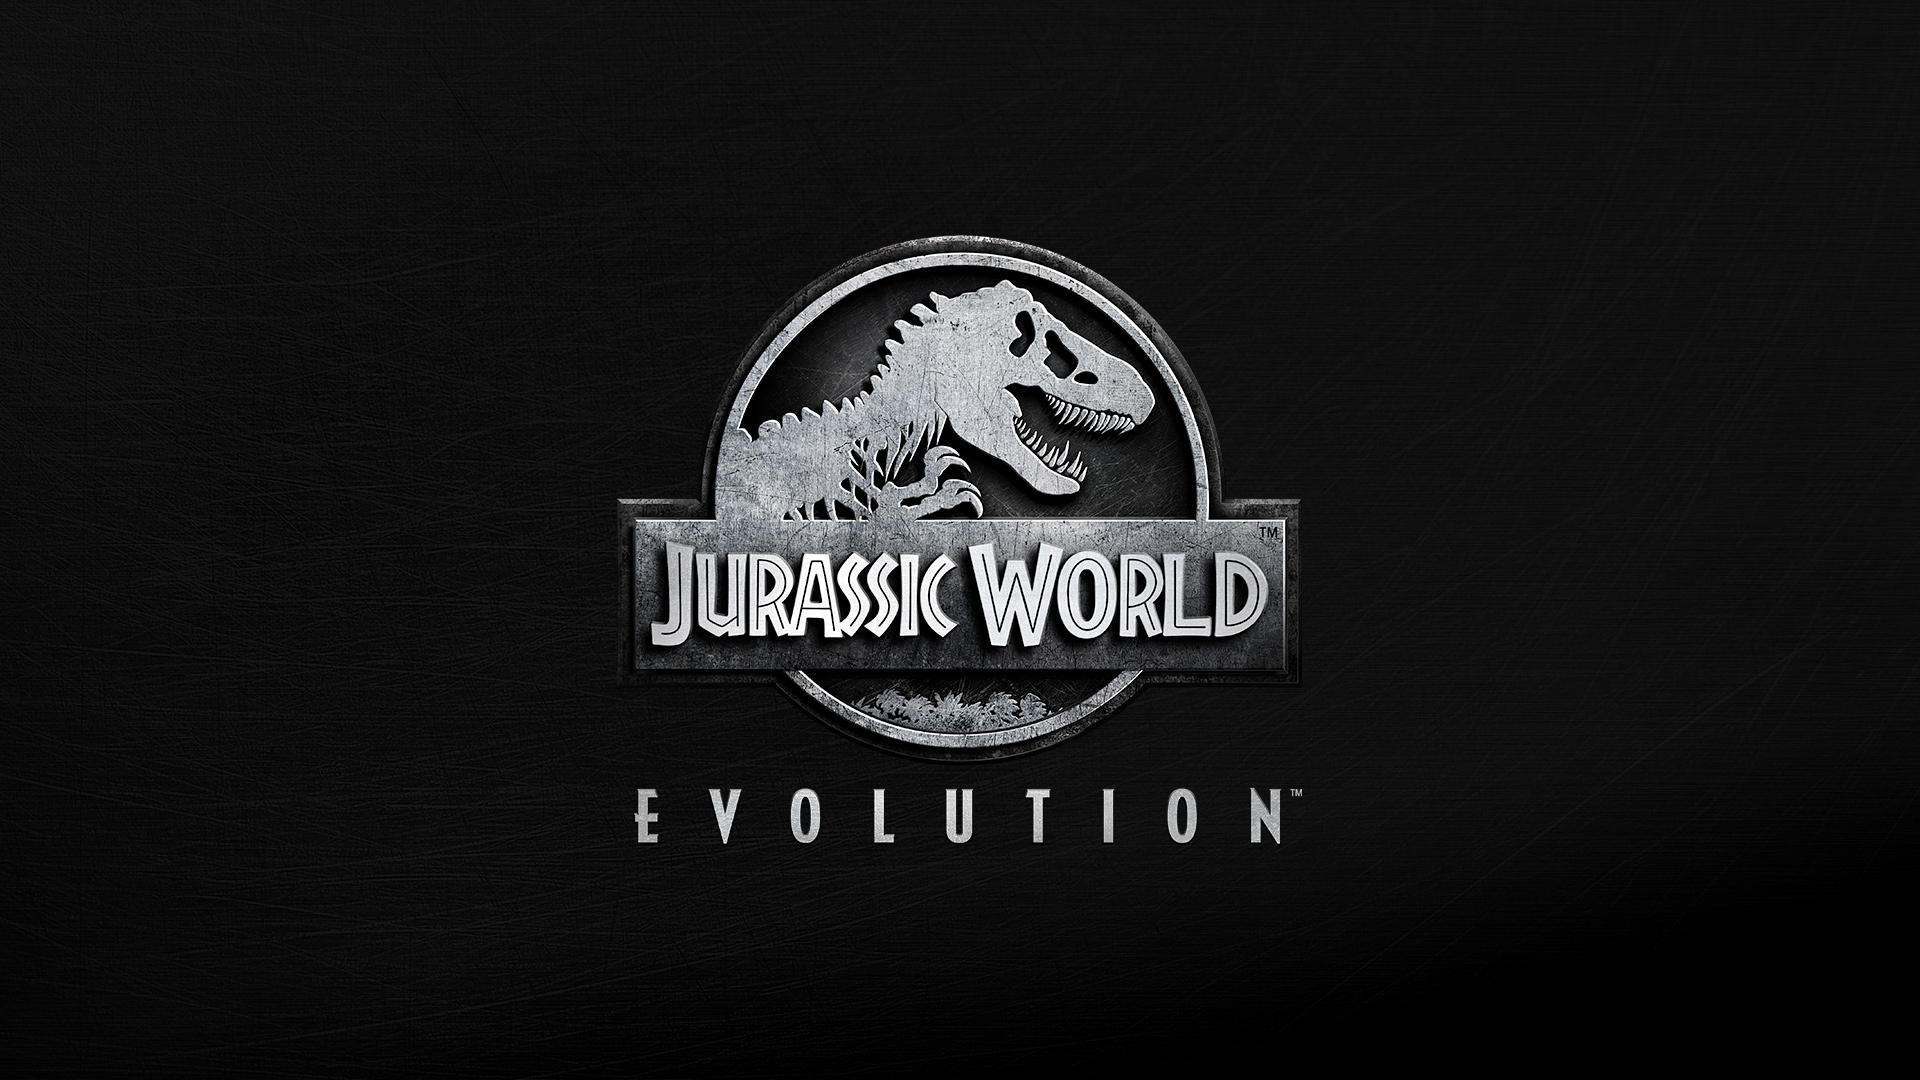 Jurassic World Evolution critique